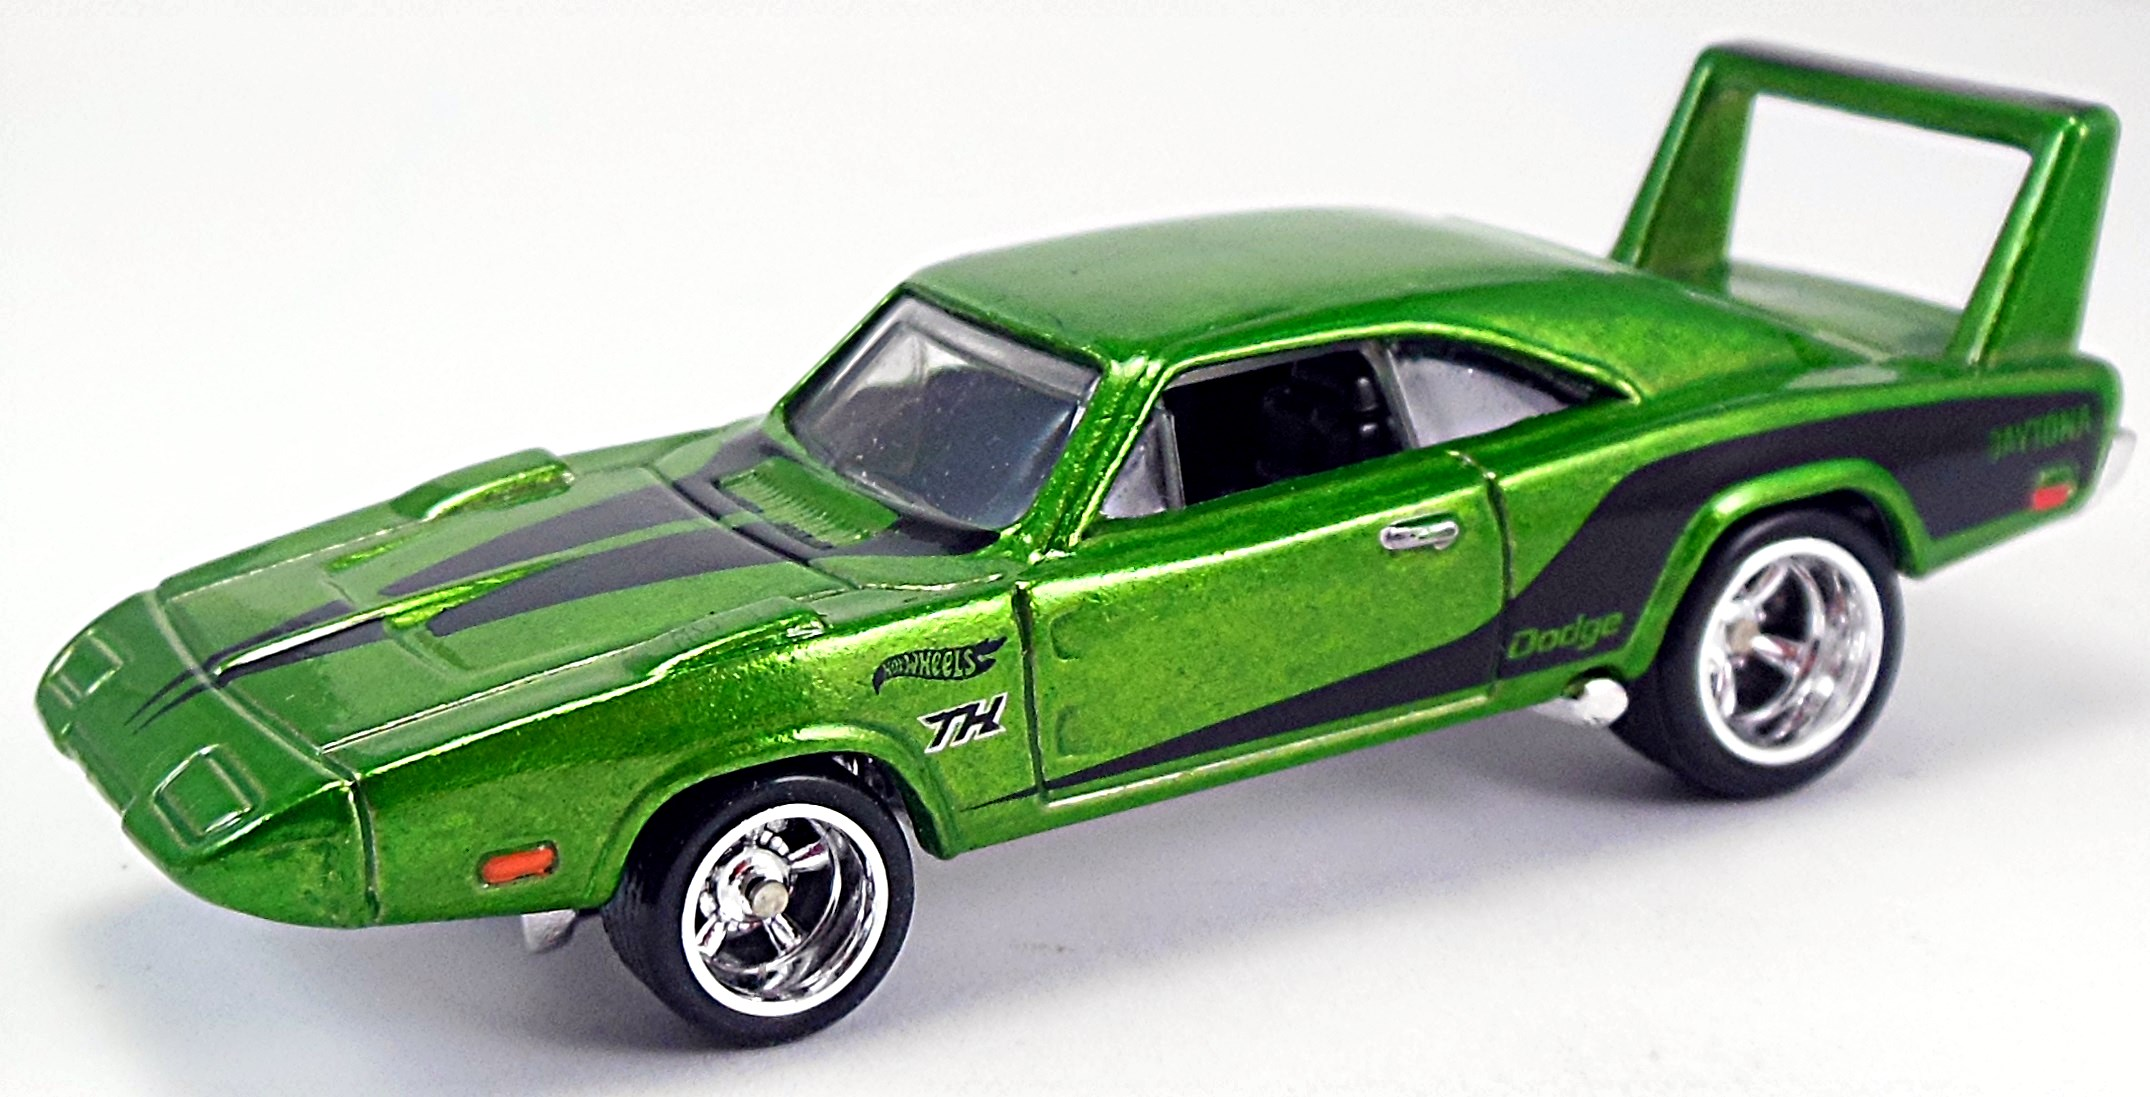 Hot Wheels langka treasure hunt 69 Dodge Charger Daytona Super TH